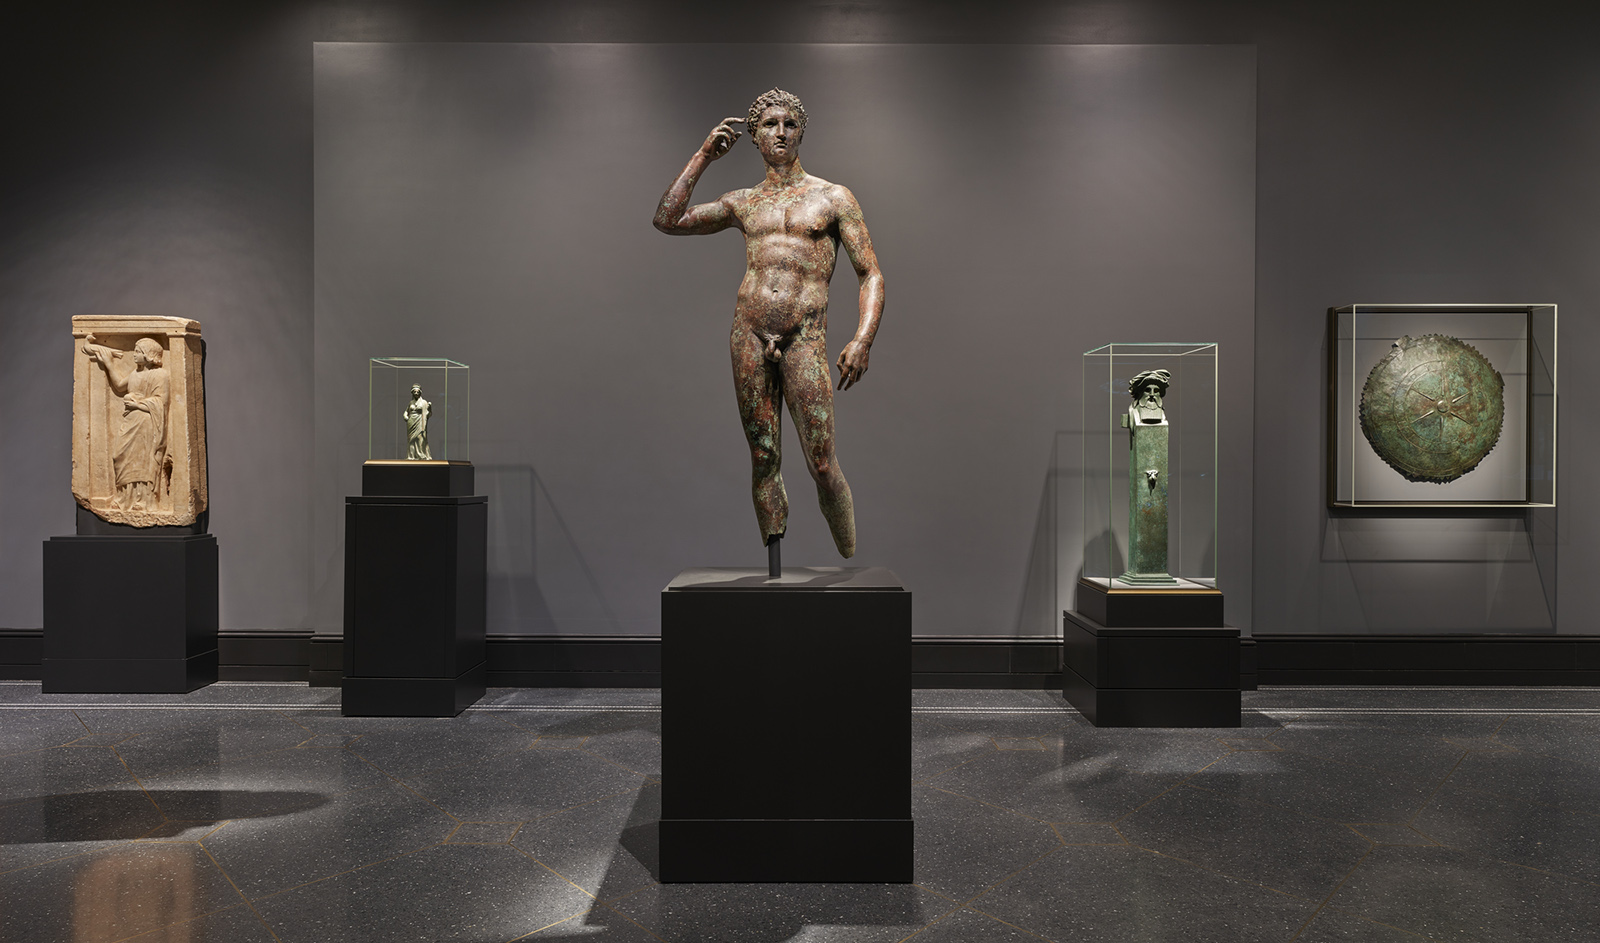 Installation view of Statue of a Victorious Youth at the Getty Villa, Spring 2018.